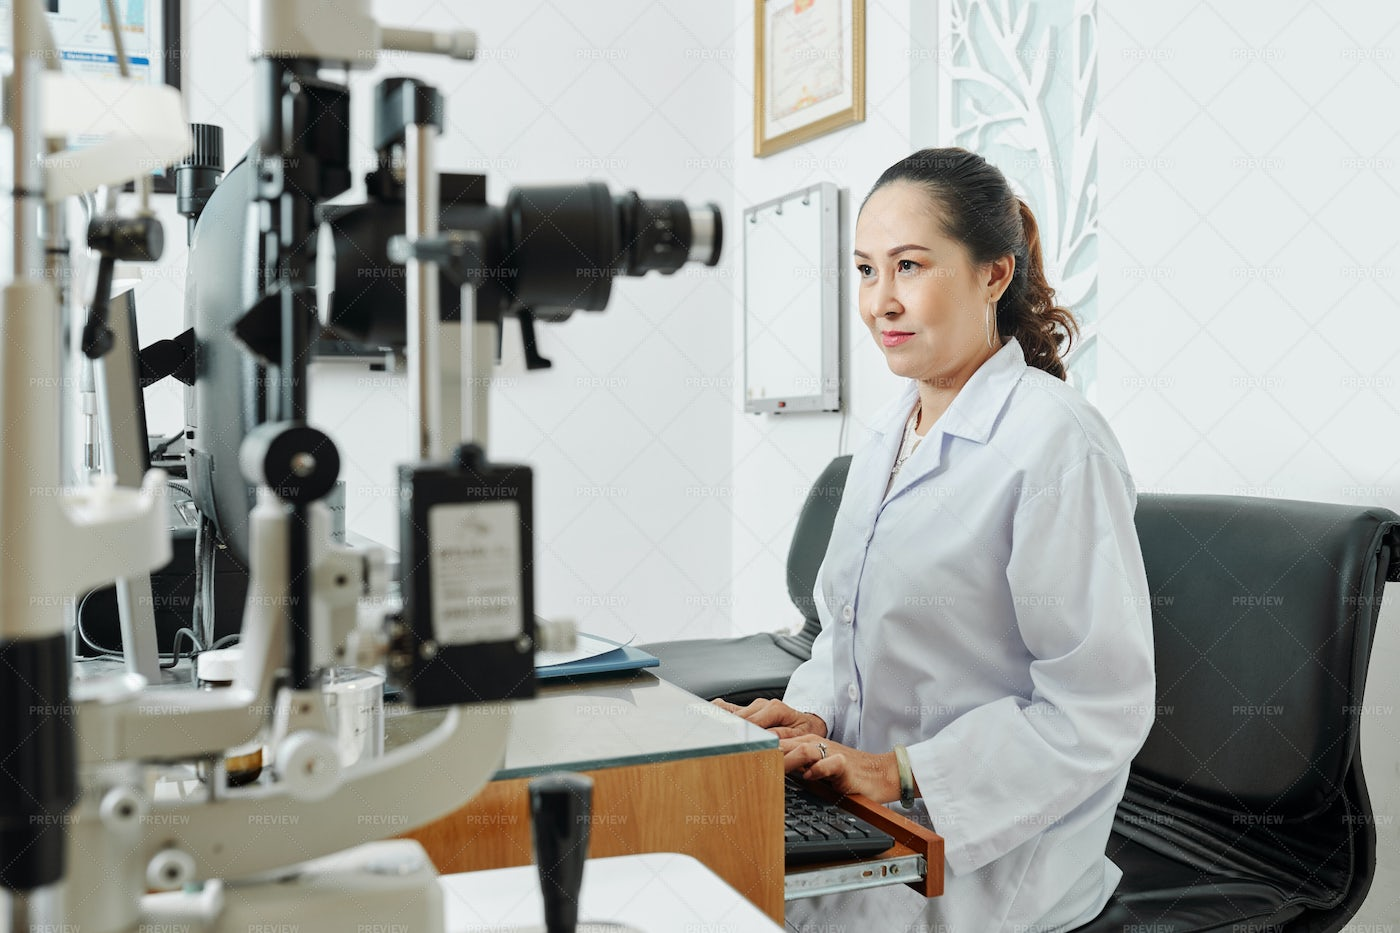 Ophthalmologist Working At Office: Stock Photos